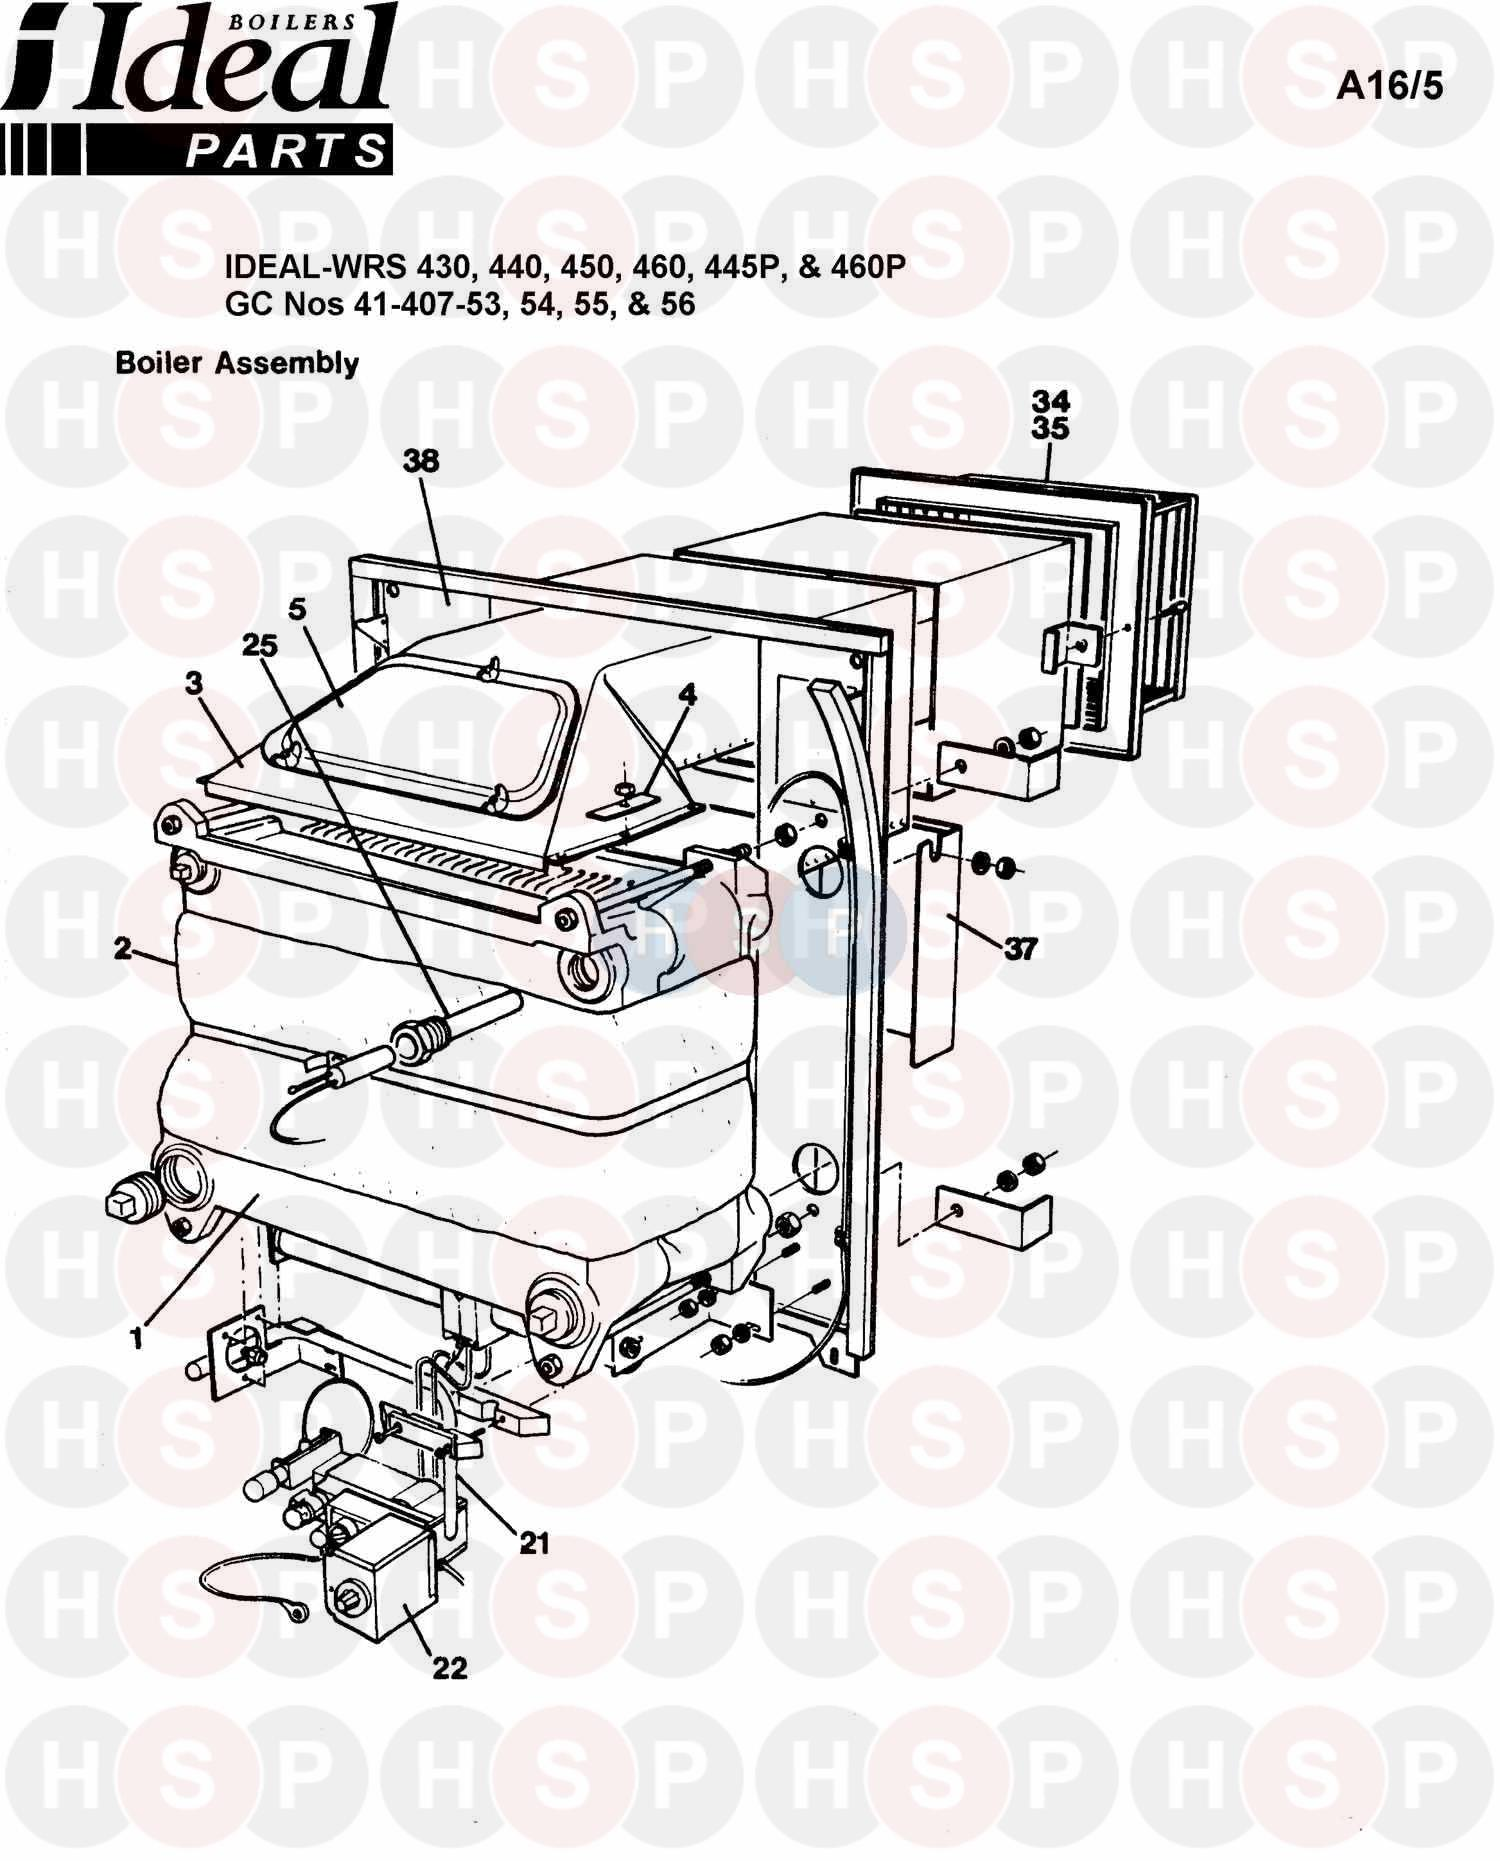 ideal concord wrs 460  boiler assembly 1  diagram